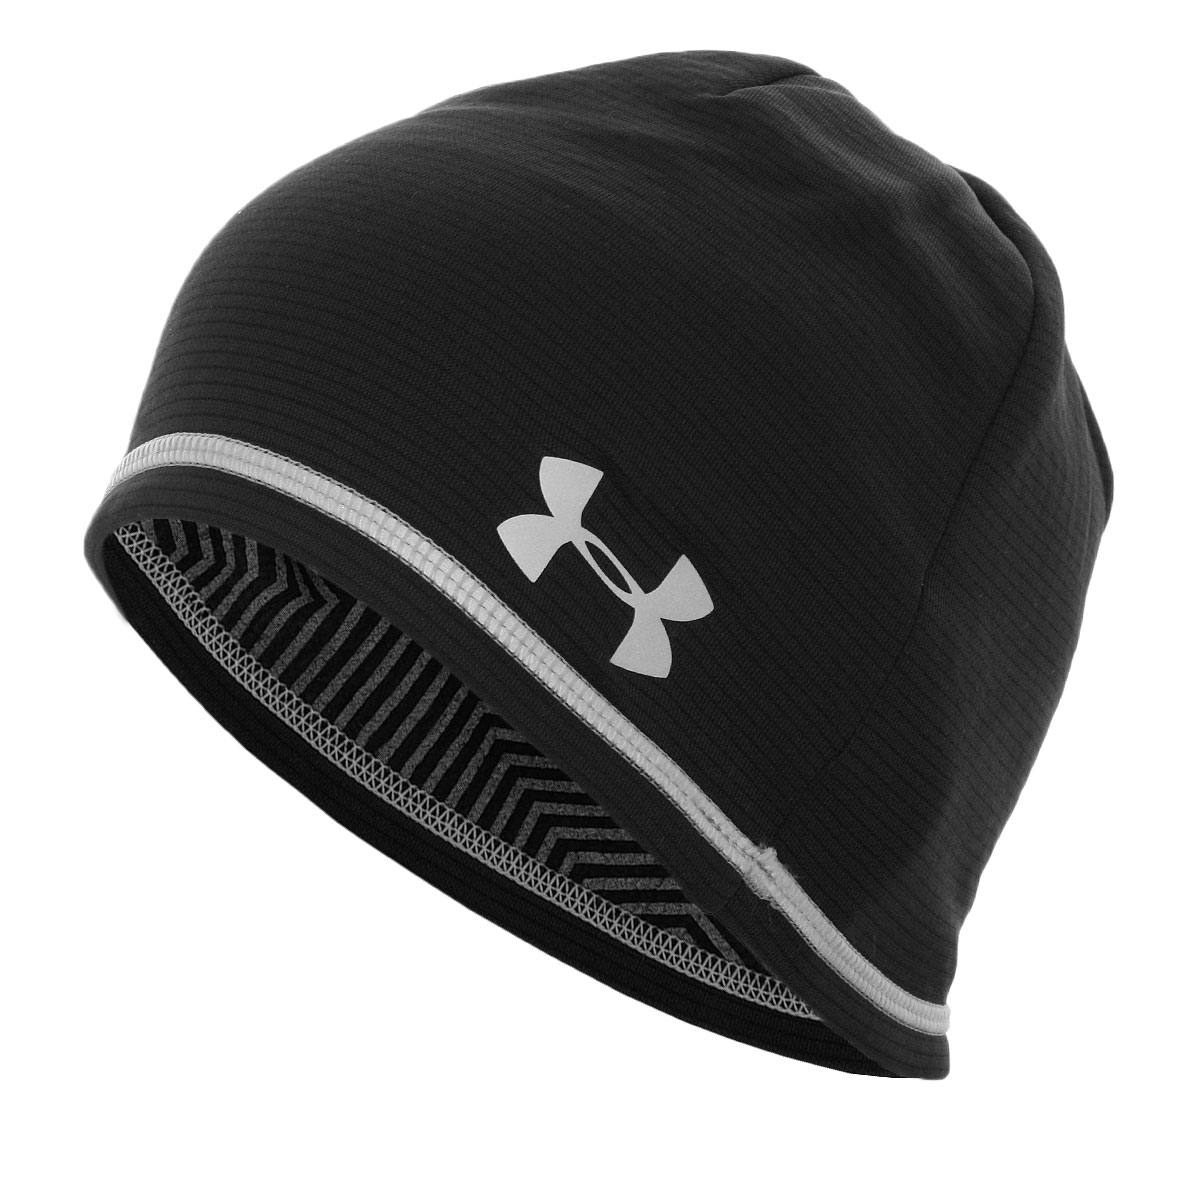 53844fab227 promo code for under armour cold gear hat 0244e 23323